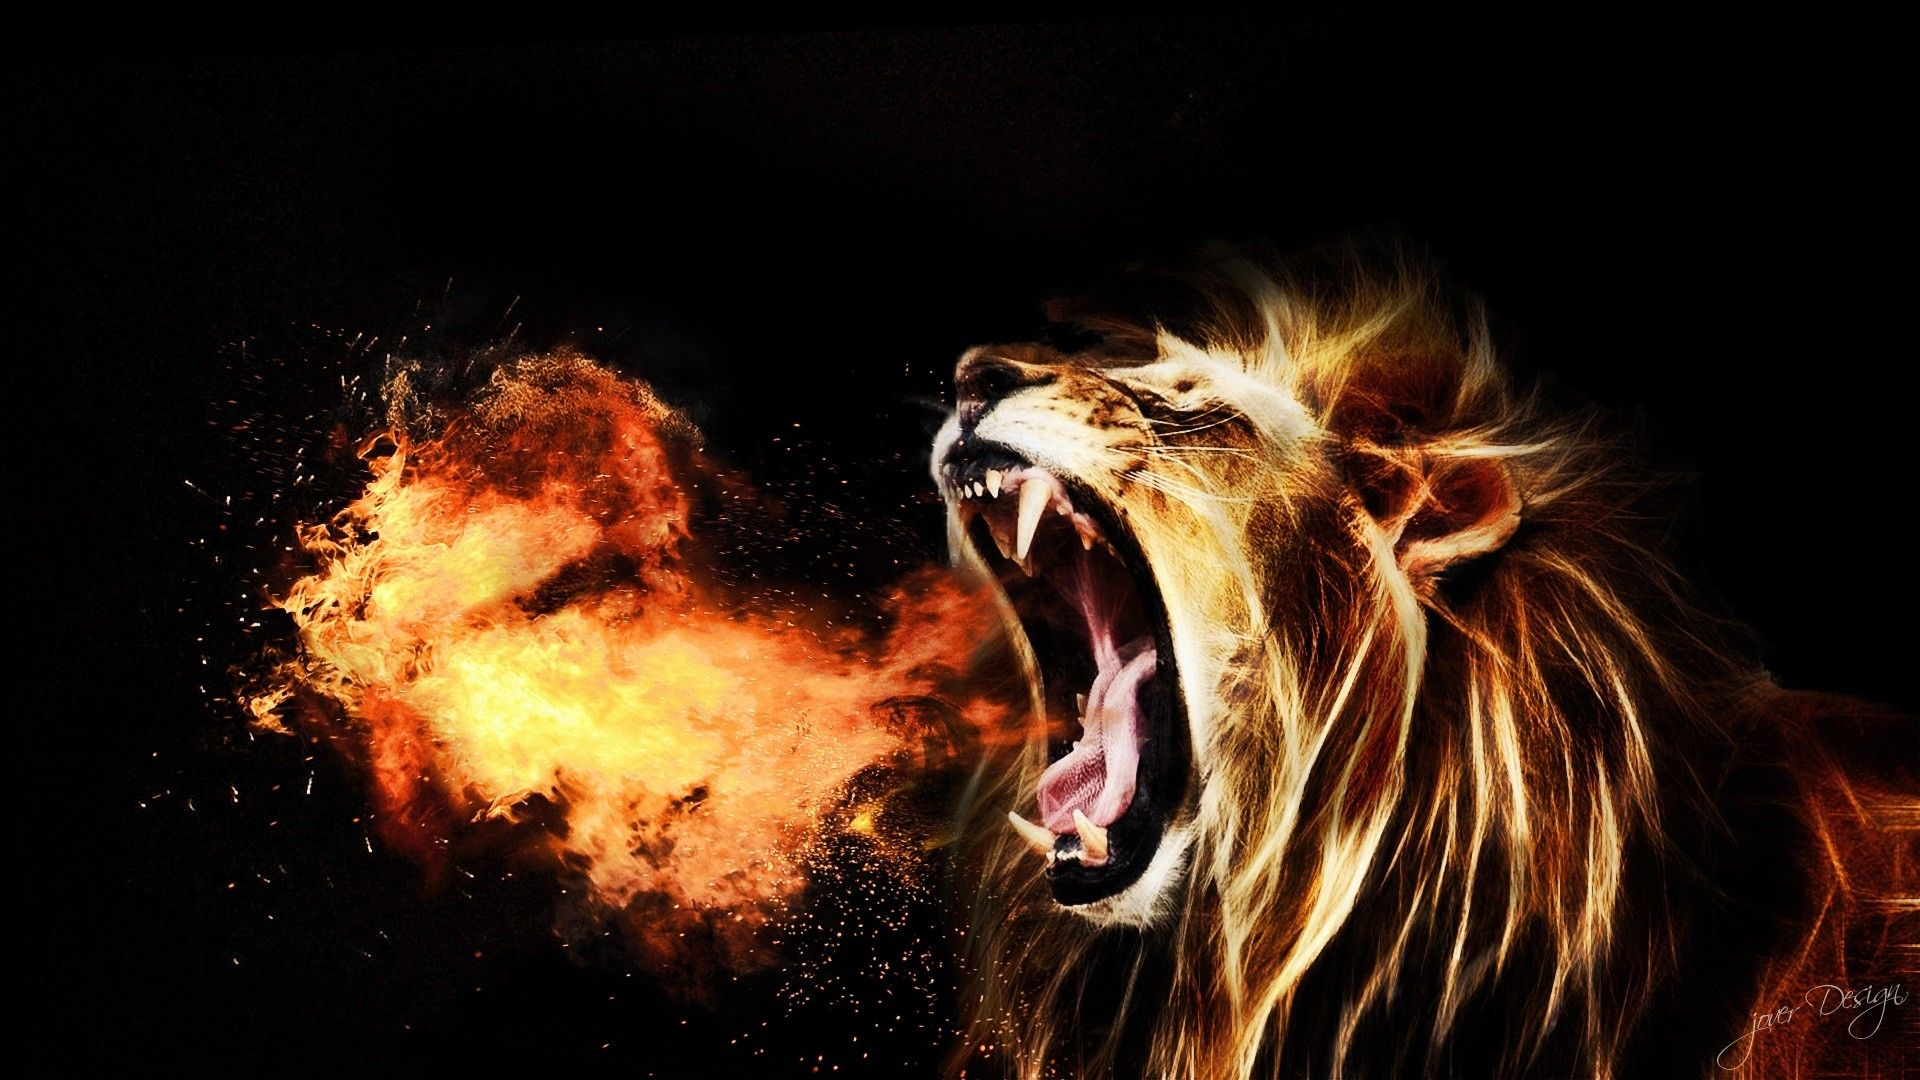 Lion Roar Free Download HD Wallpapers 3308 - HD Wallpapers ...